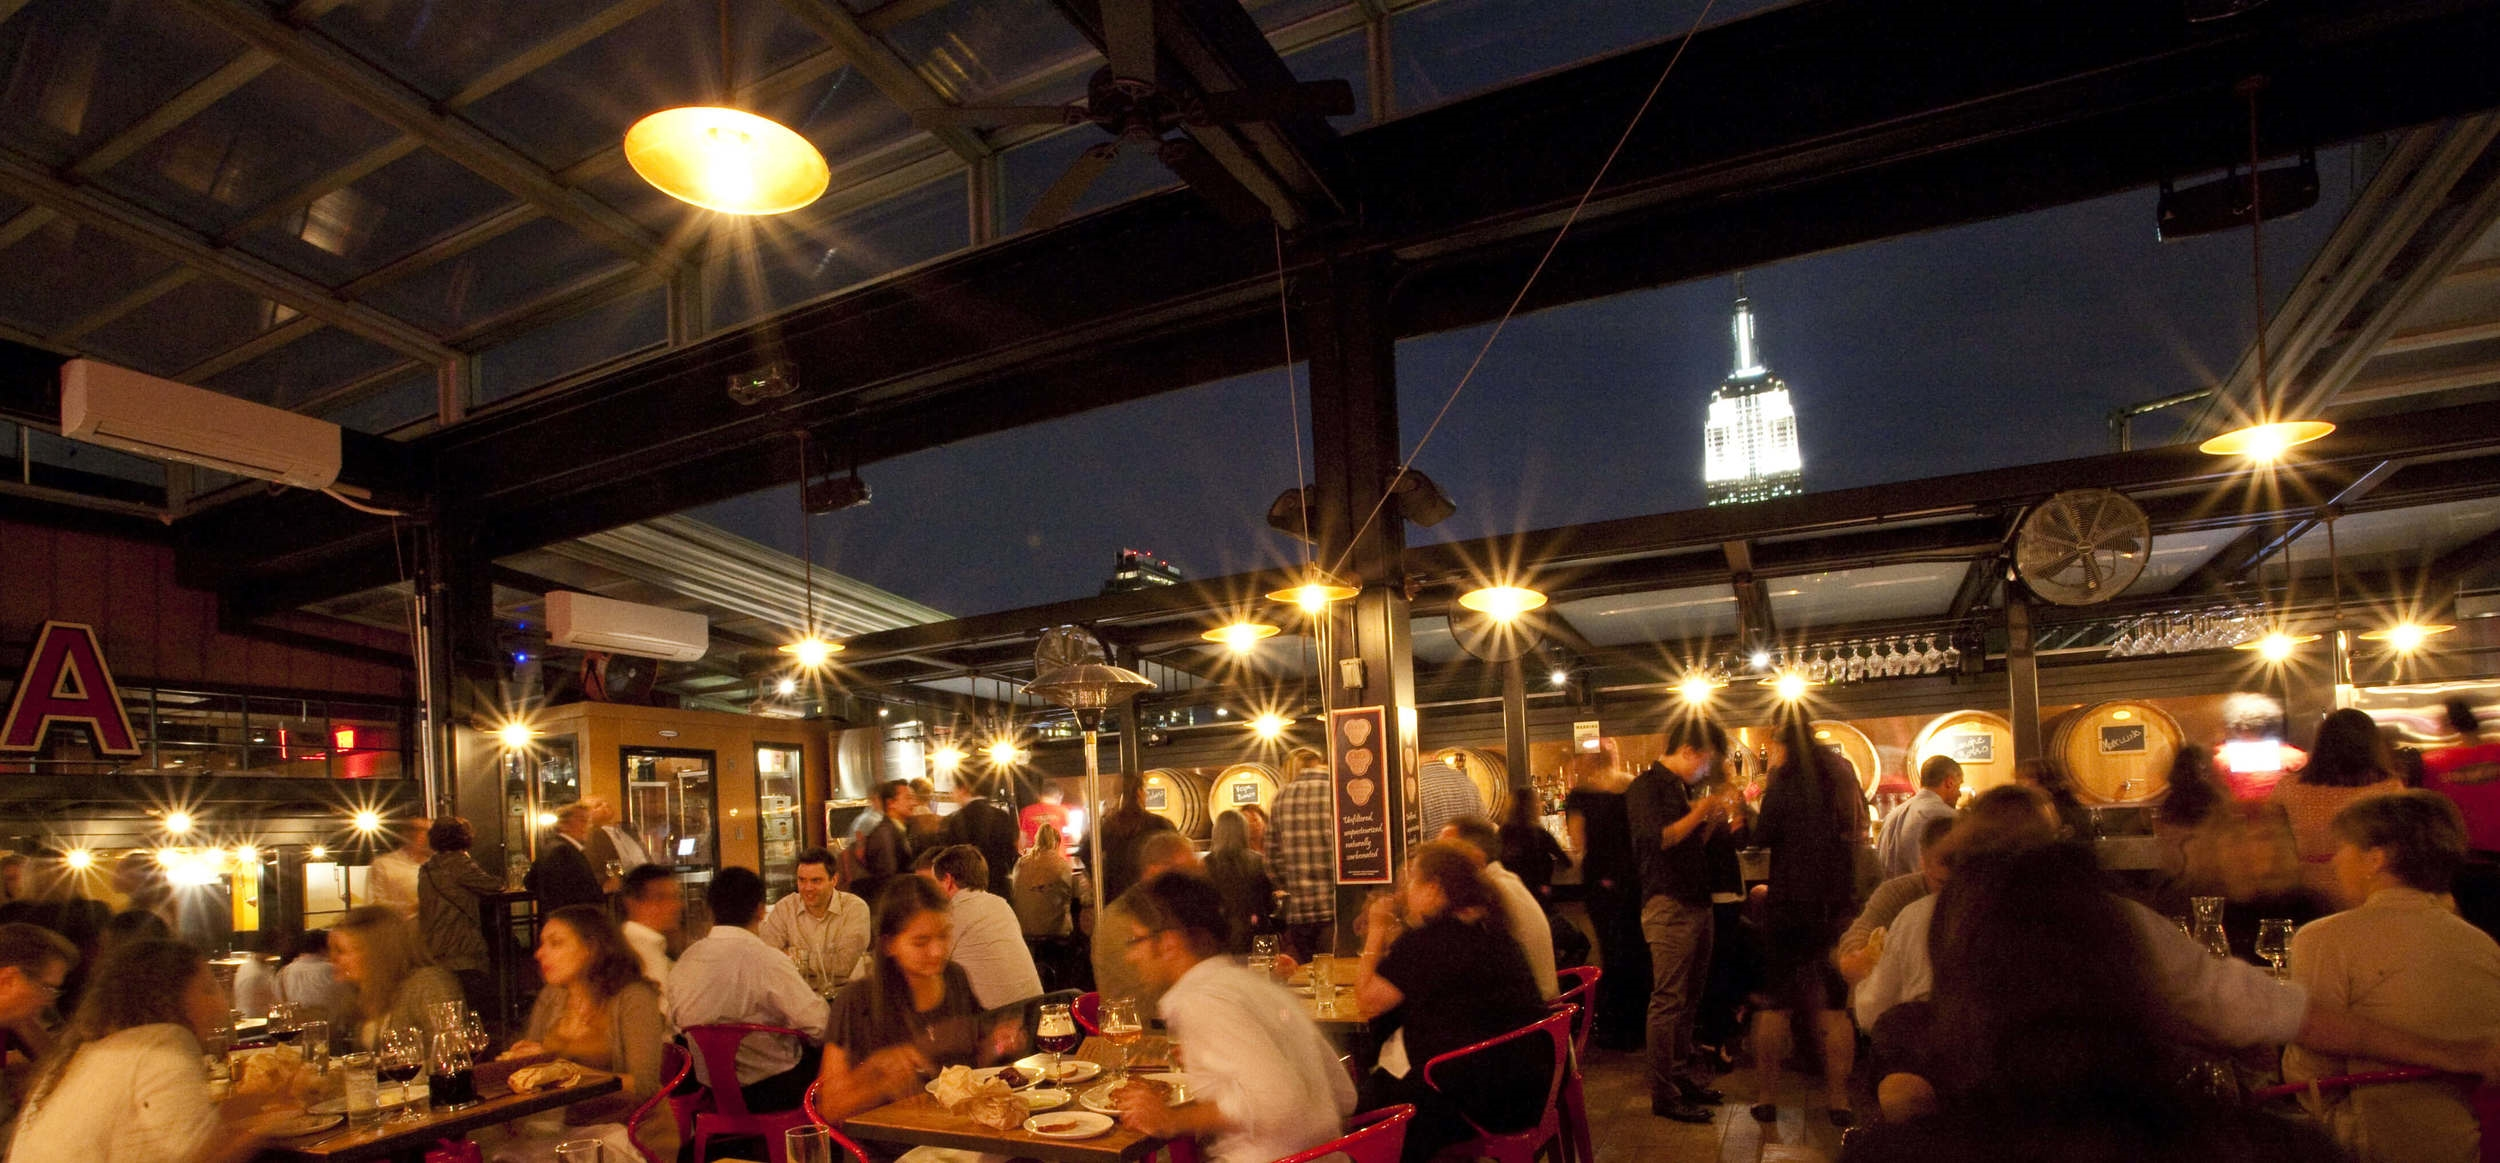 Birreria , rooftop restaurant and brewery with knockout skyline views